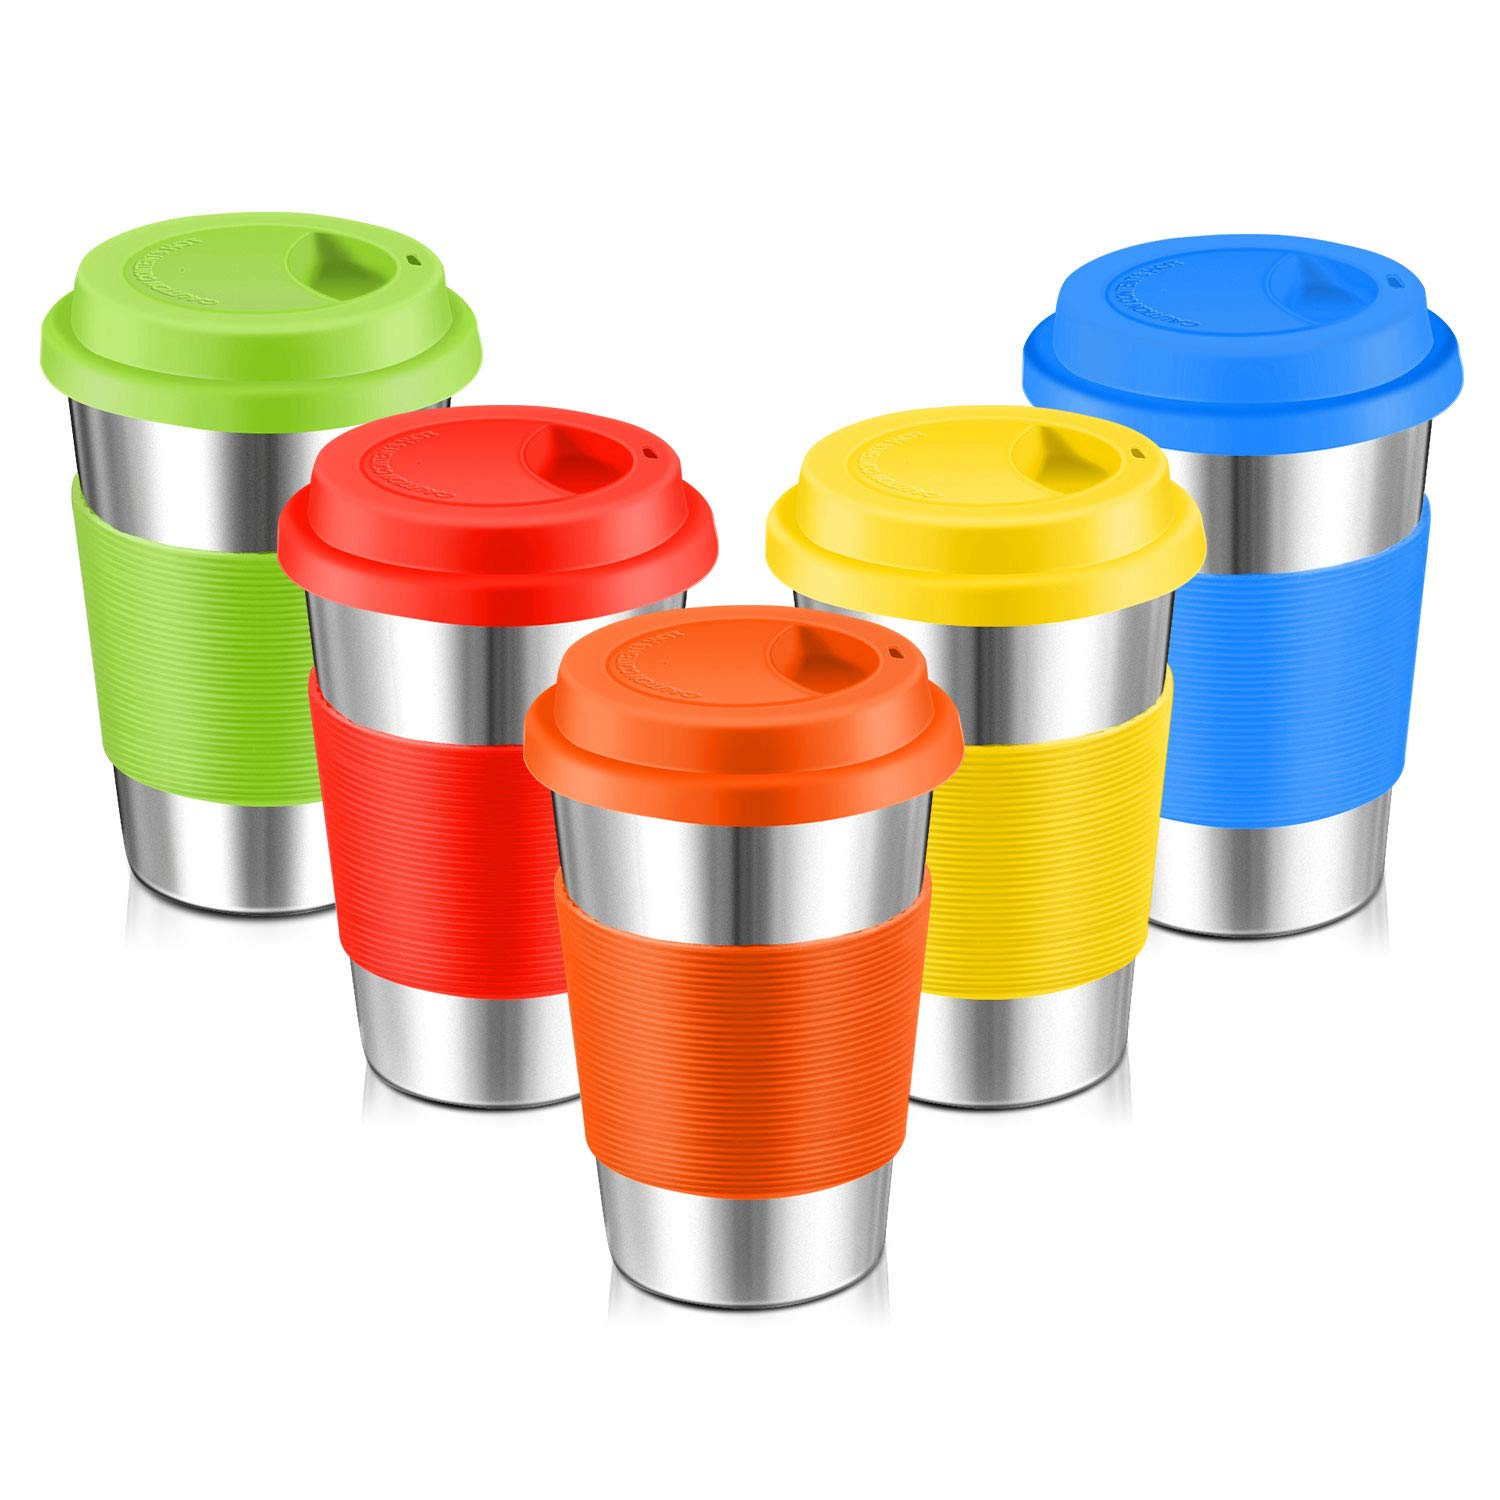 Stainless Steel Cups, Spnavy 16 OZ Stackable Pint Cup Tumbler with Silicone Lids Sleeves for Adults Kids Toddlers Metal Drinking Glasses for Pubs, Bars, Travel, Camping, Home and Outdoor Use, 5 Pack